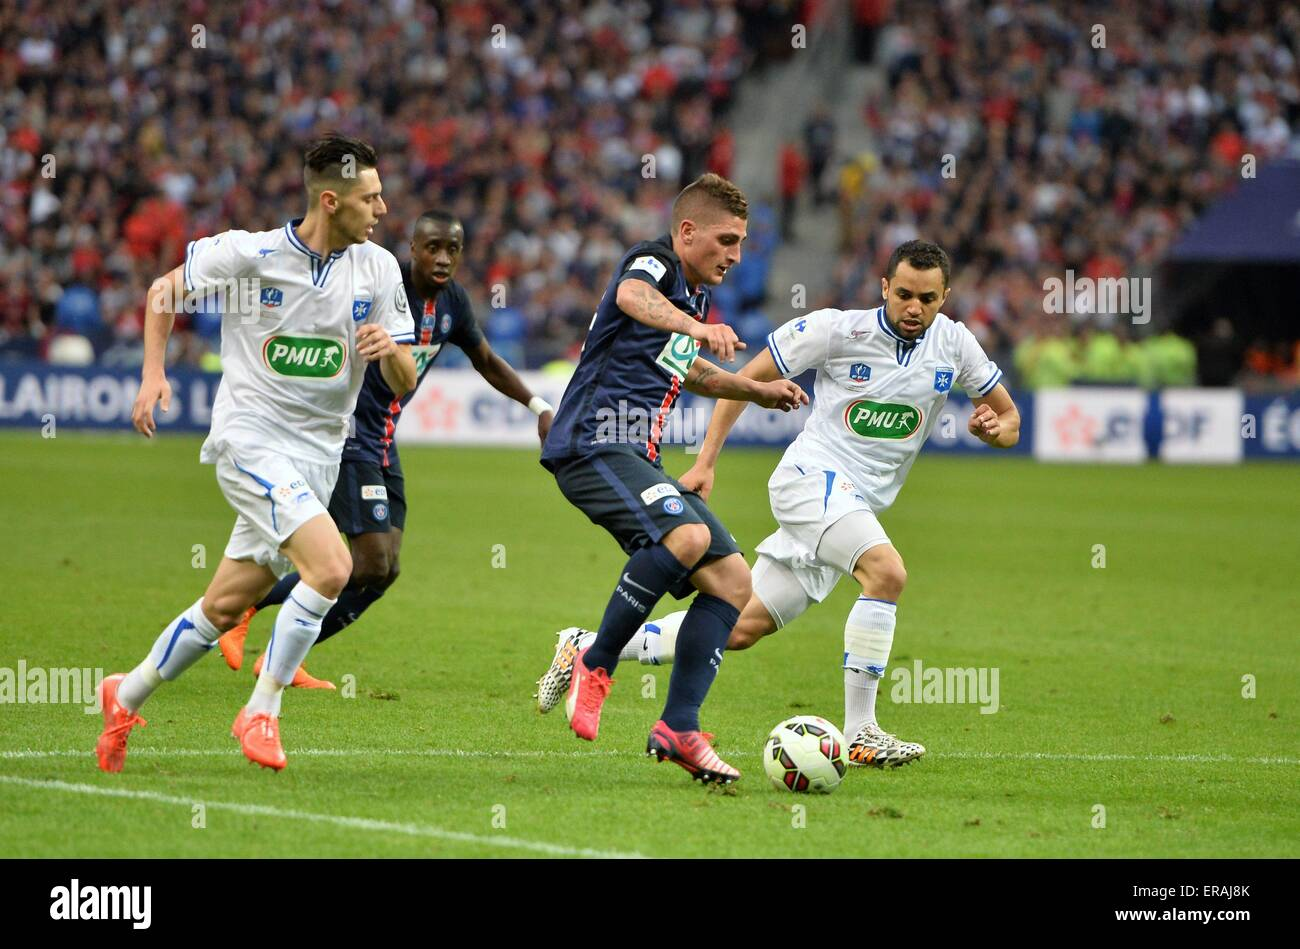 Stade de france paris france 30th may 2015 coupe de - Finale coupe de france football 2015 ...